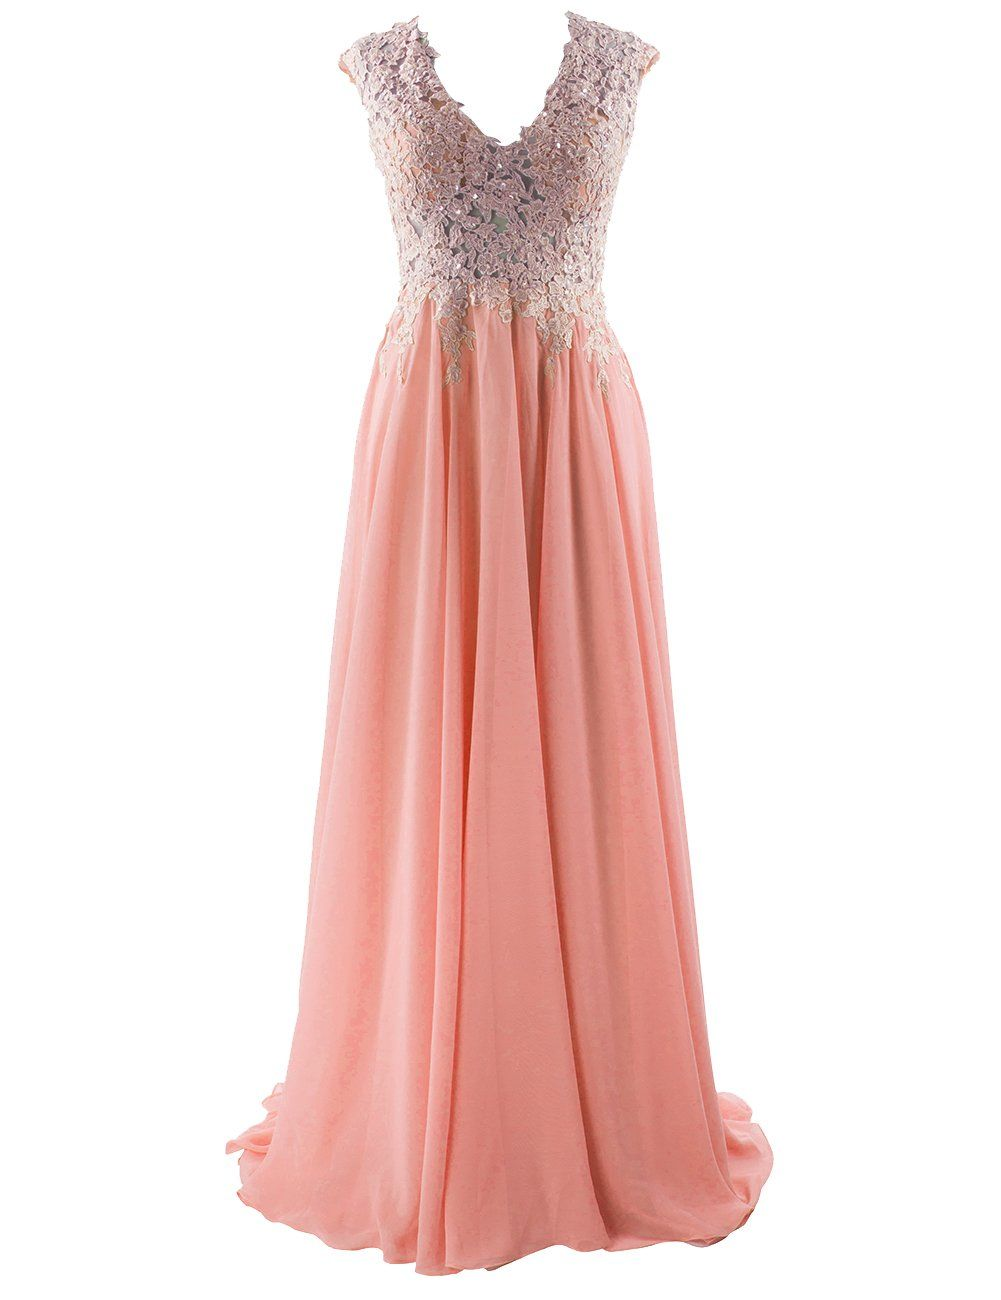 592a8d4fd7f2 Womens Long Prom Dresses Lace Aline Evening Dress Chiffon Bridesmaid Gown  Sleeveless Peach US2     Continuously the product at the image link.